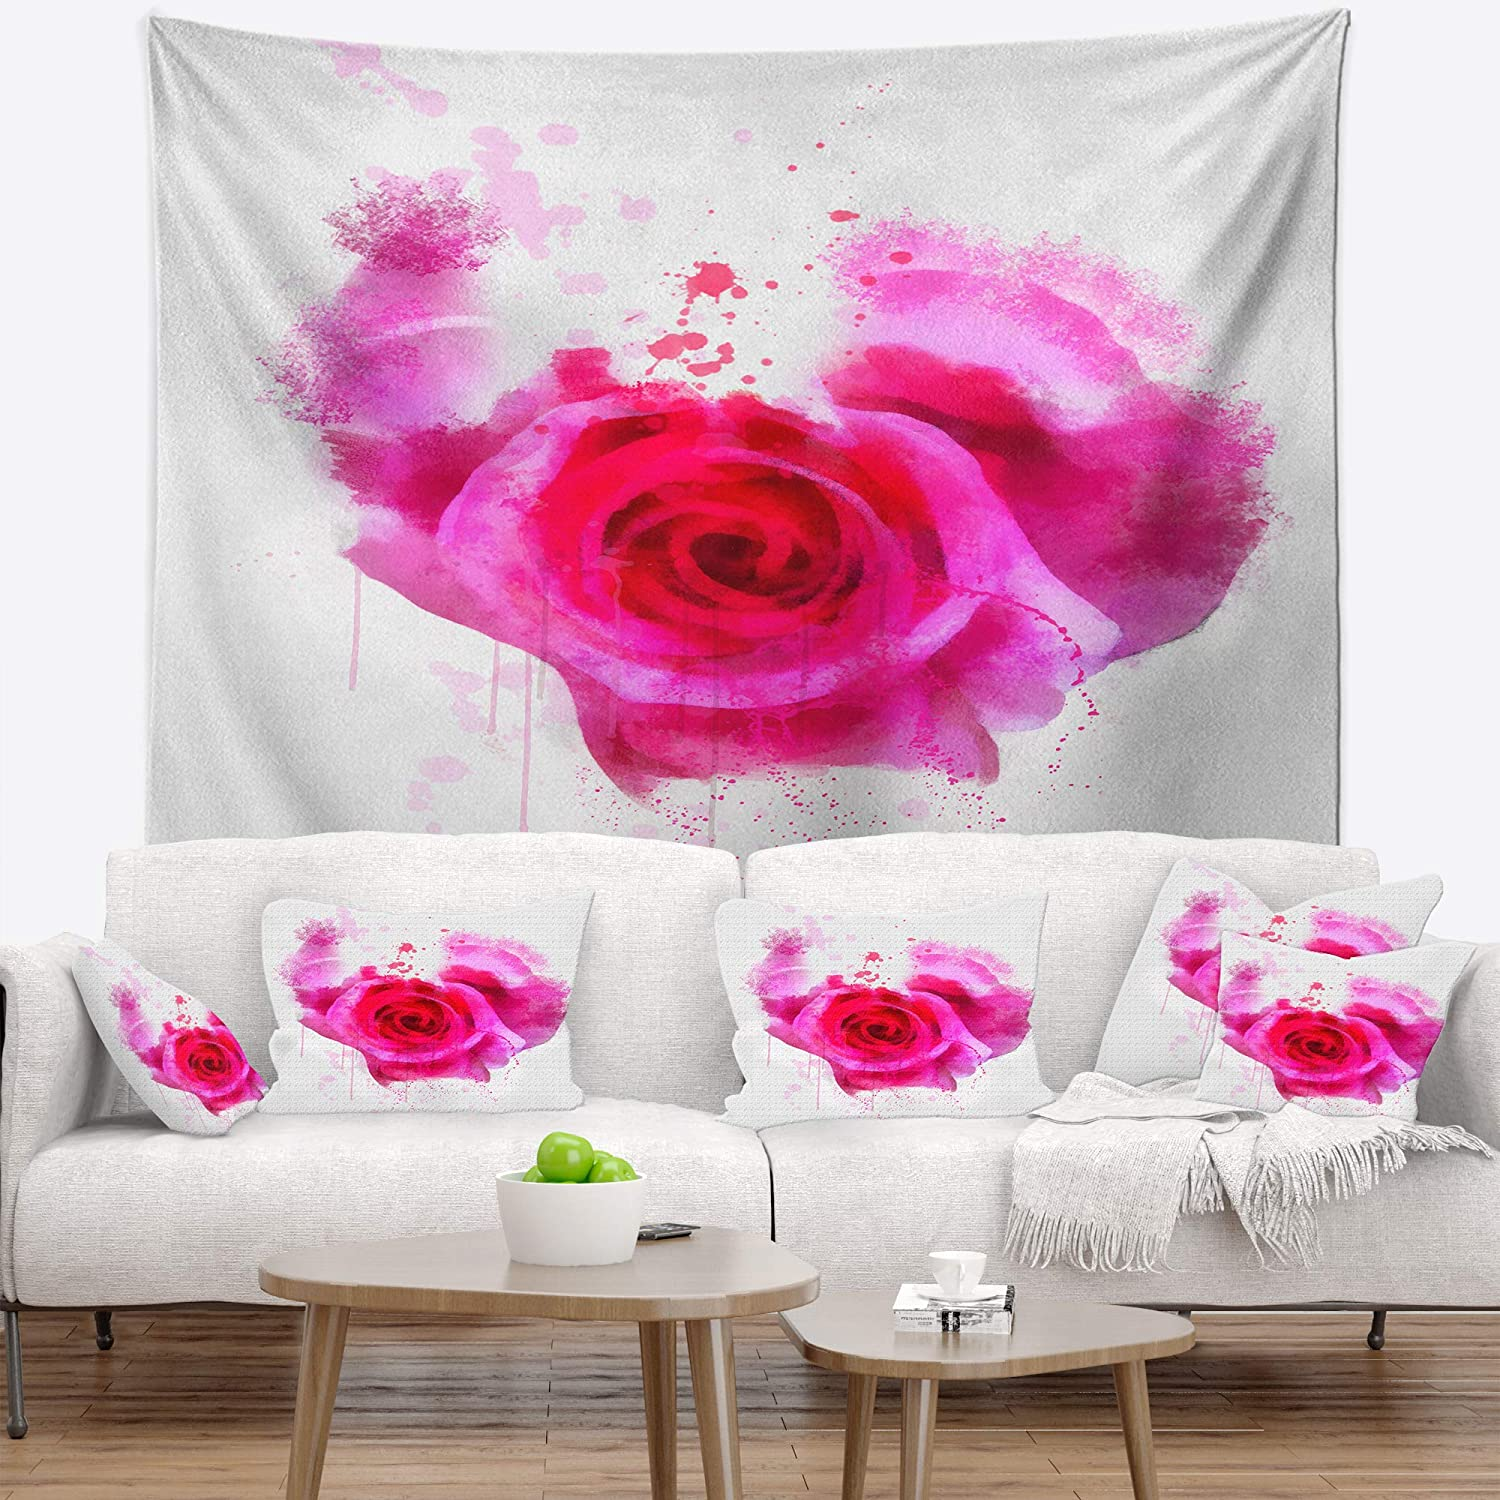 Created On Lightweight Polyester Fabric x 39 in 32 in Designart TAP13909-32-39  Pink Hand Drawn Rose on White Floral Blanket D/écor Art for Home and Office Wall Tapestry Medium